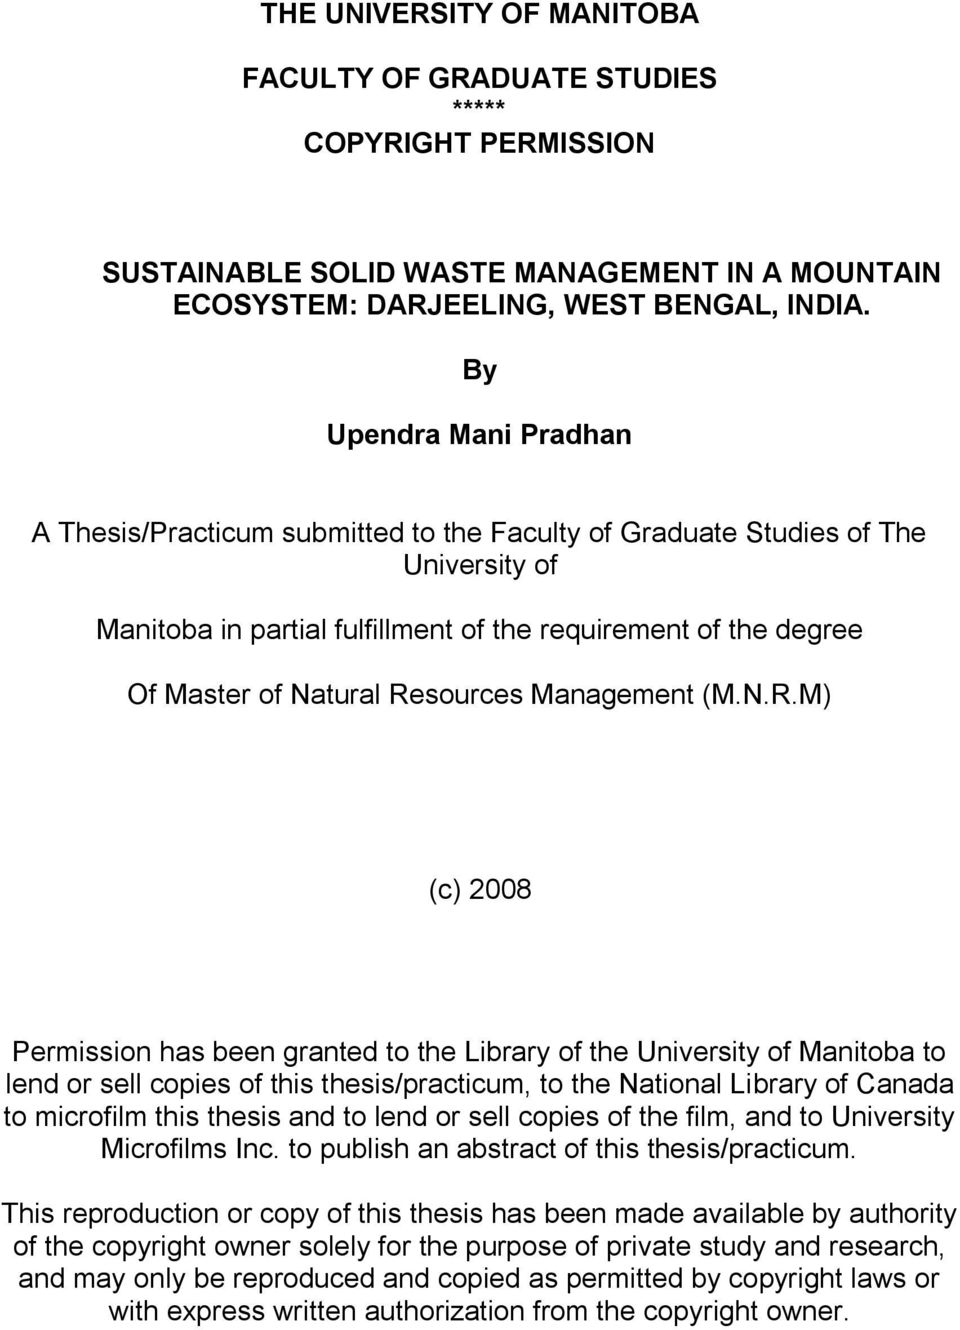 Thesis topics on solid waste management